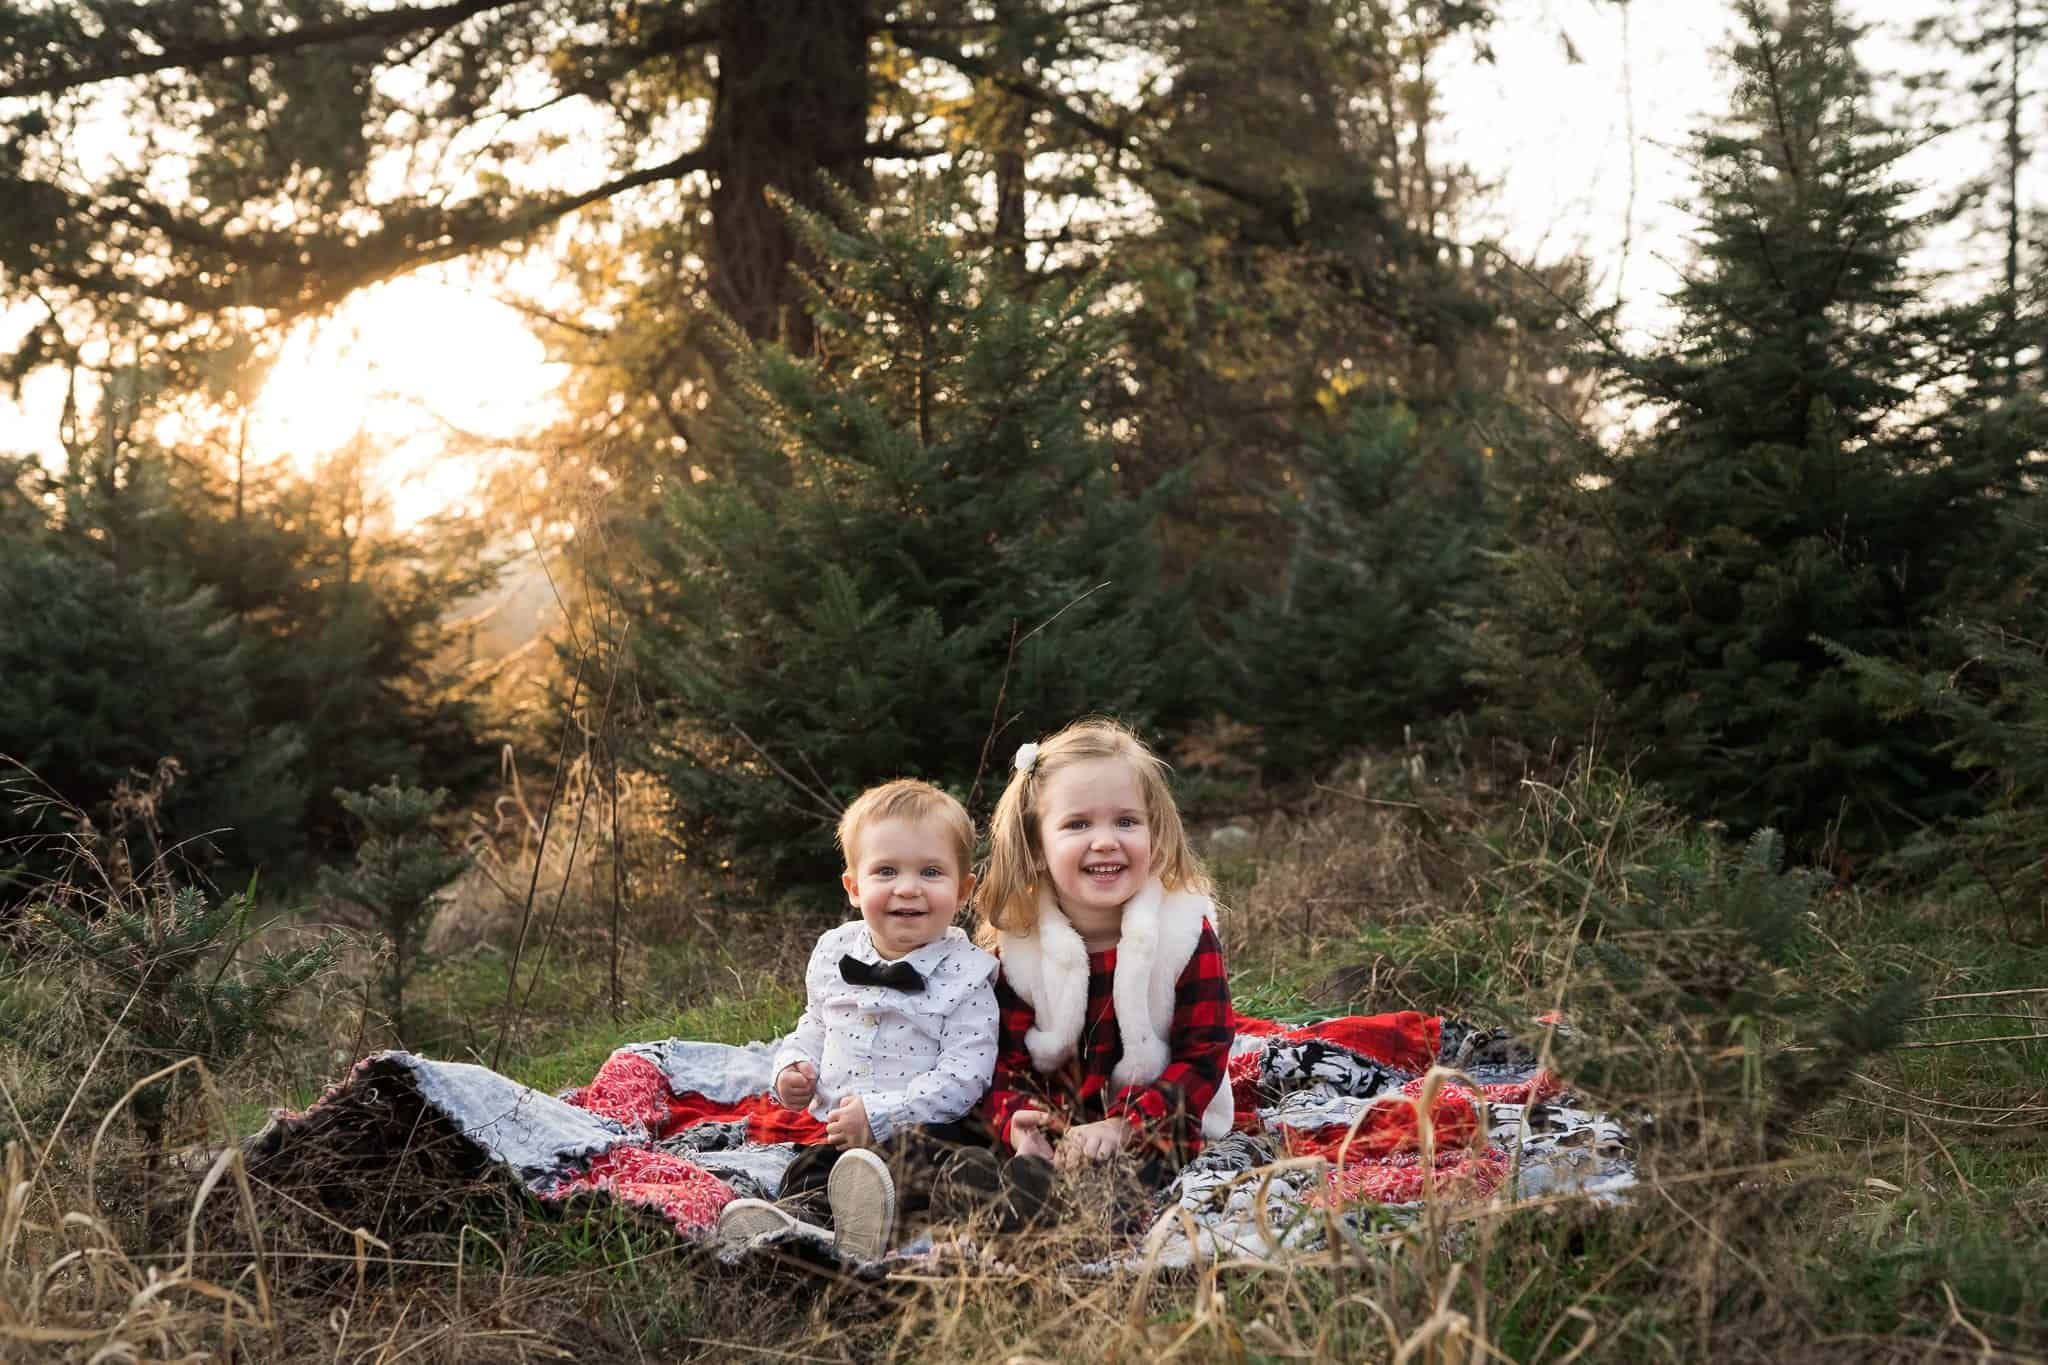 two little kids sitting on blanket in a forest at sunset